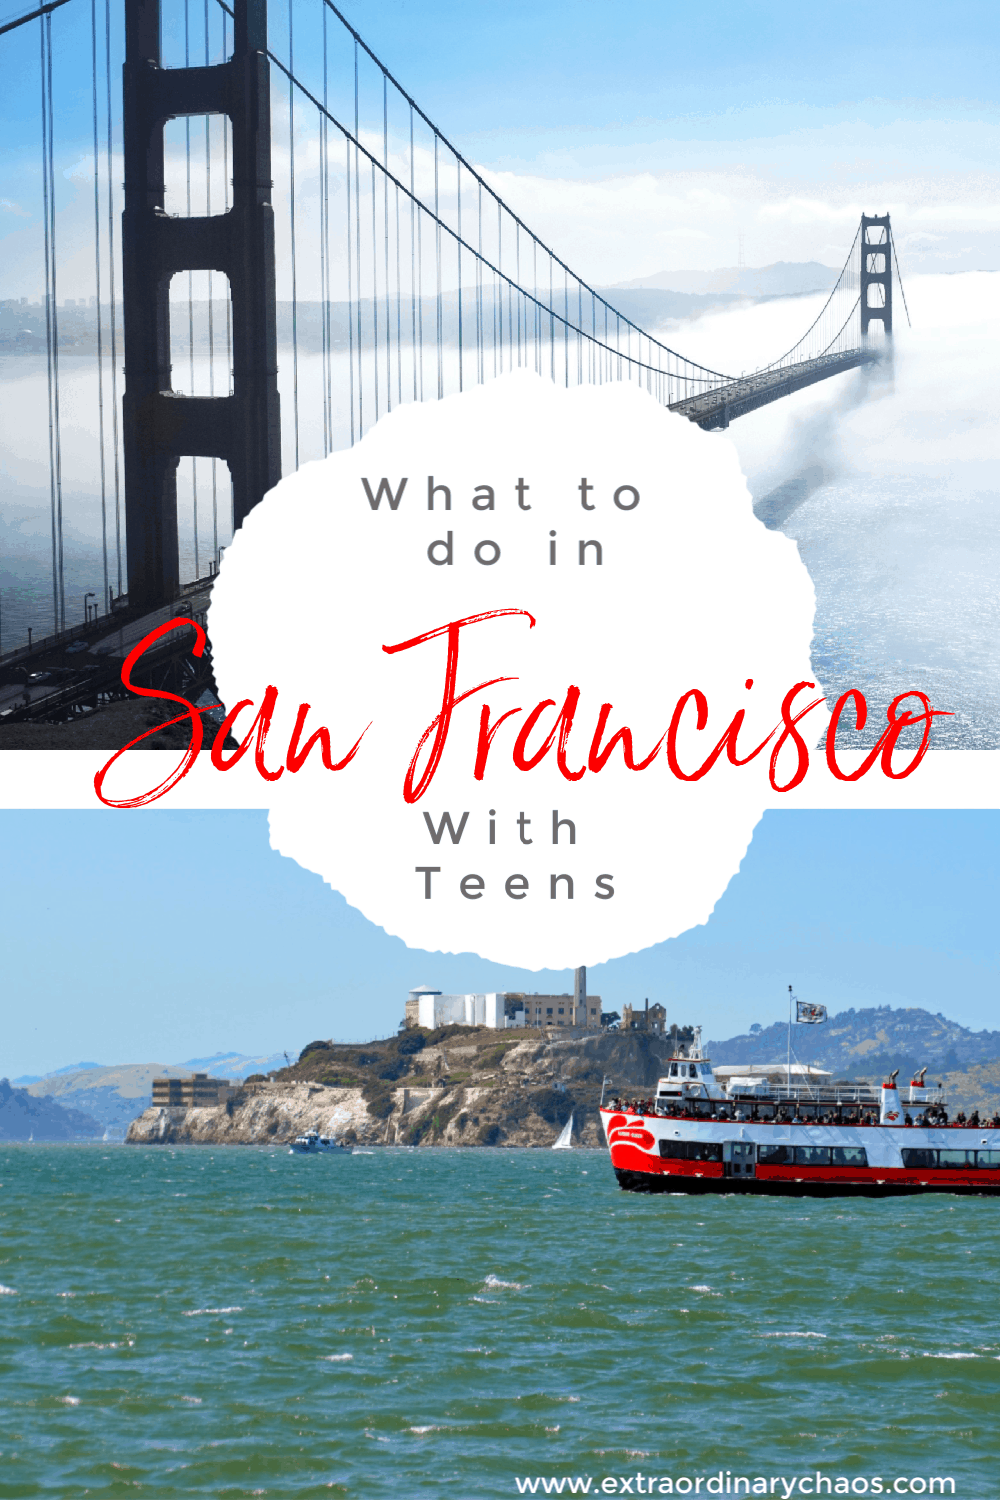 What to do in San Francisco with Teenagers